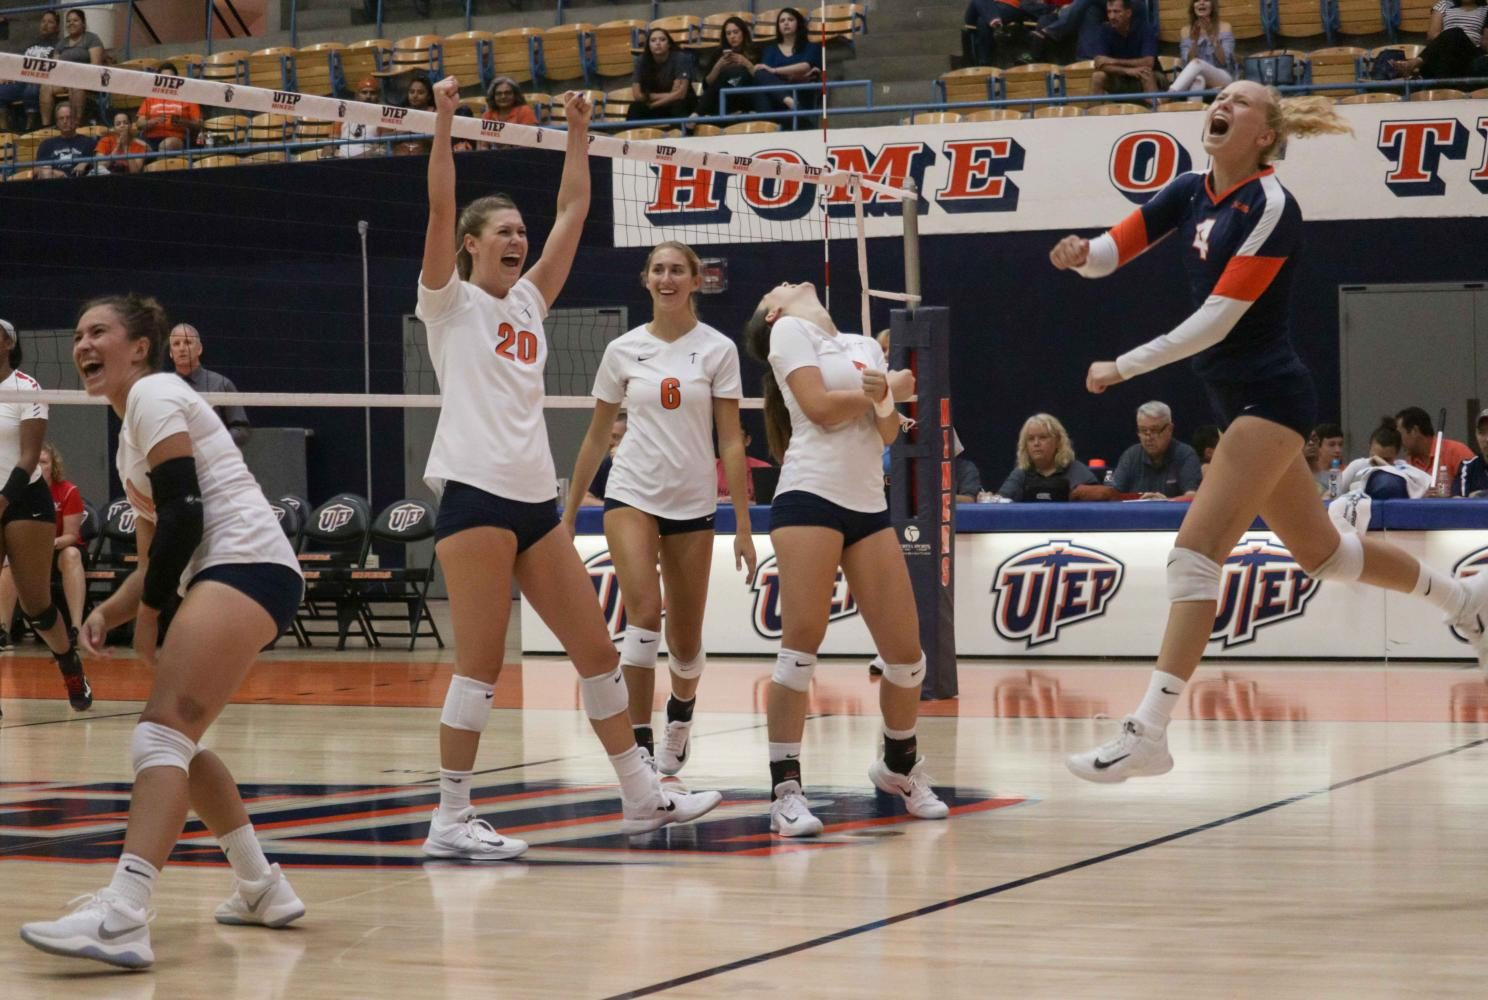 The+Miners+defeated+Youngstown+State+3-2+on+Saturday+afternoon.